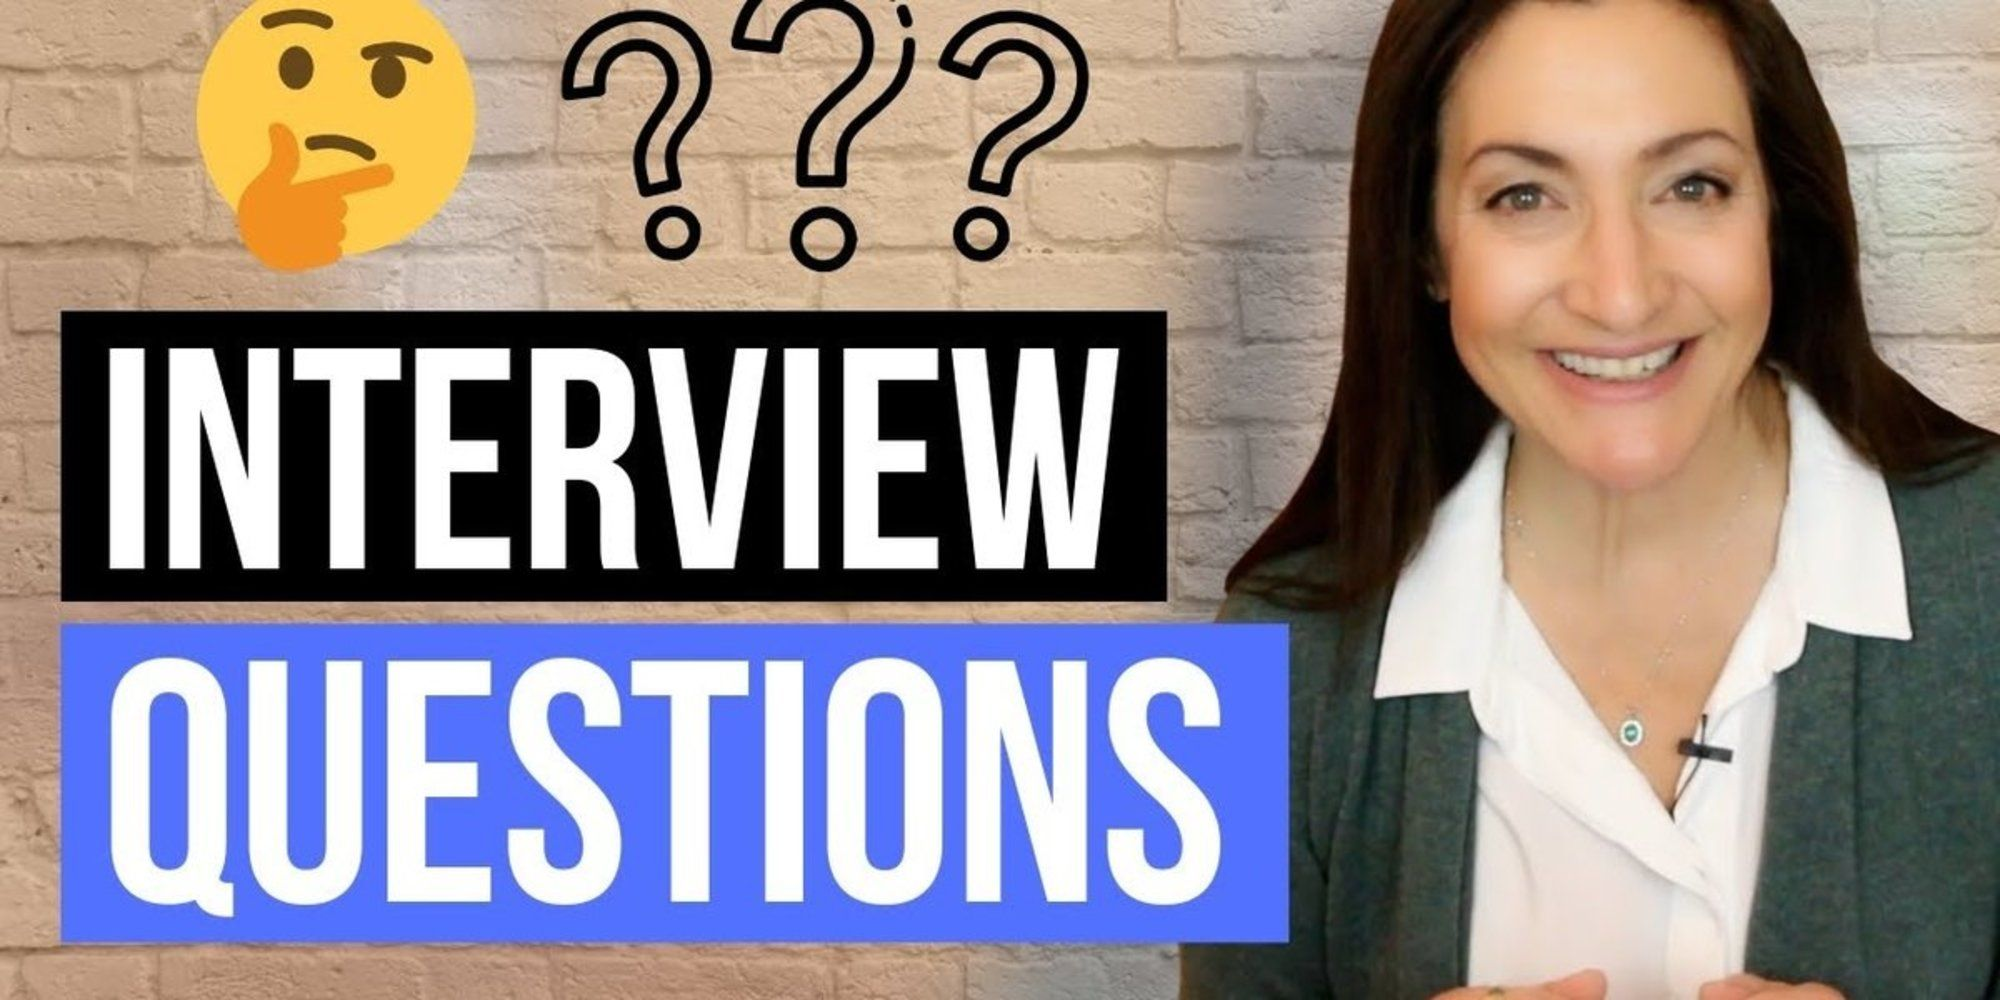 These Are The Smartest Questions To Ask In A Job Interview